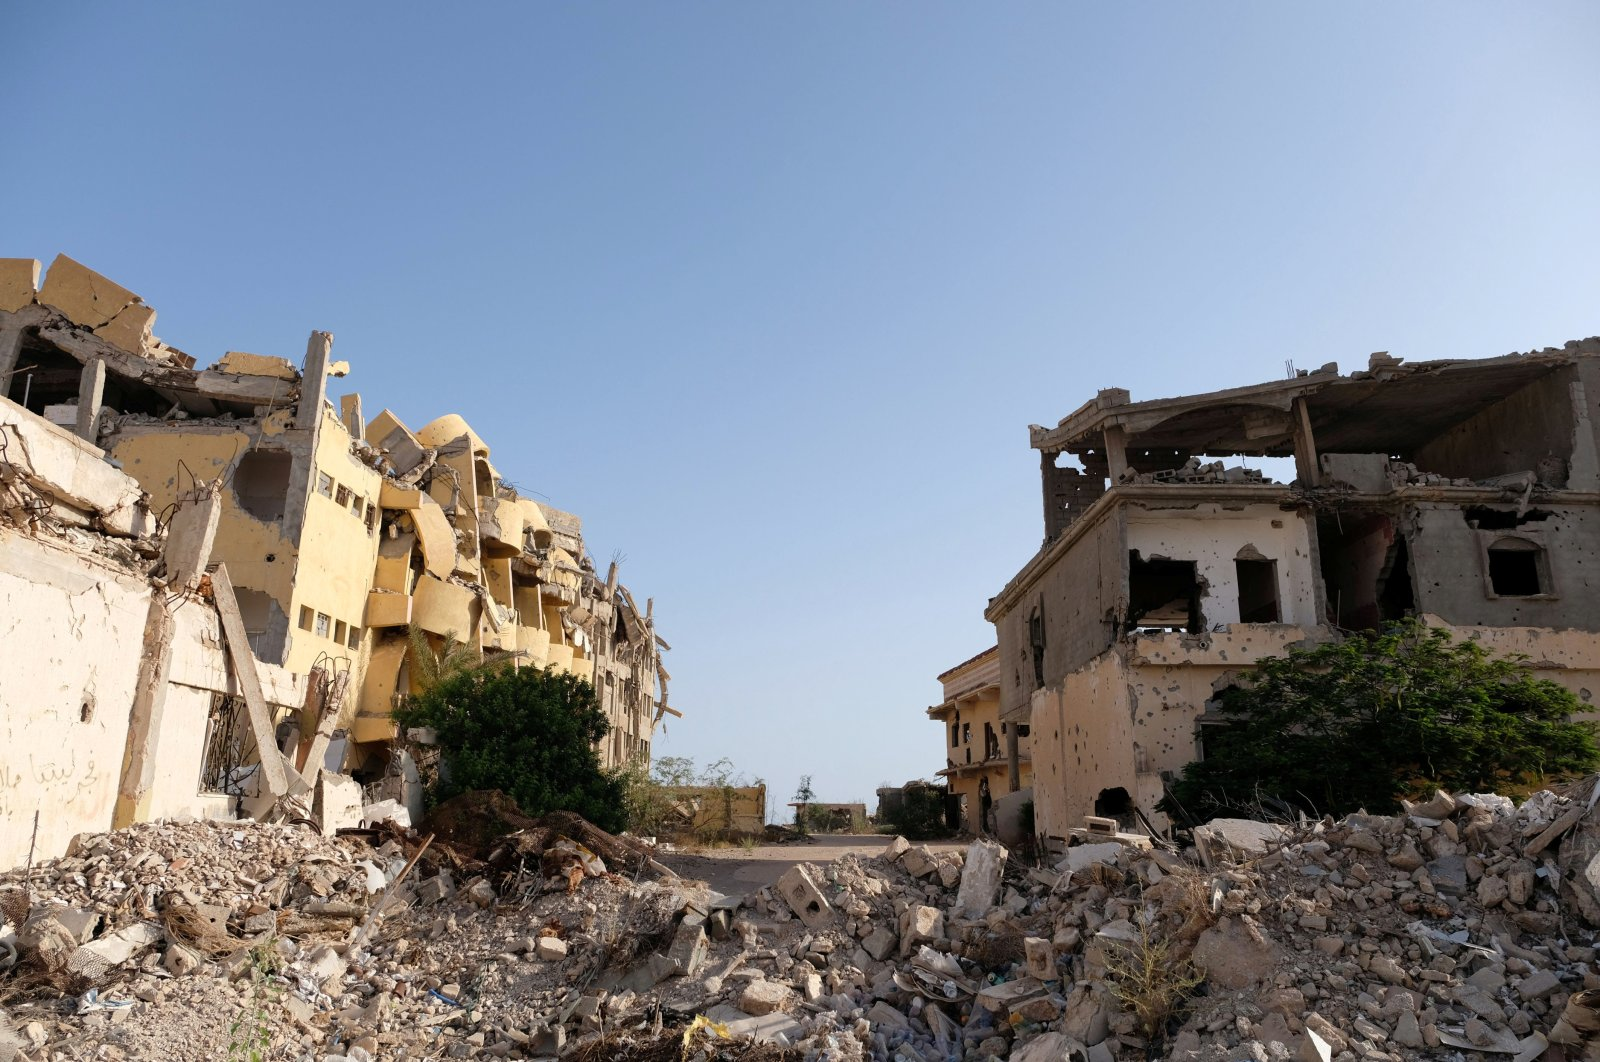 Destroyed buildings are seen in Sirte, Libya, Aug. 18, 2020. (Reuters Photo)